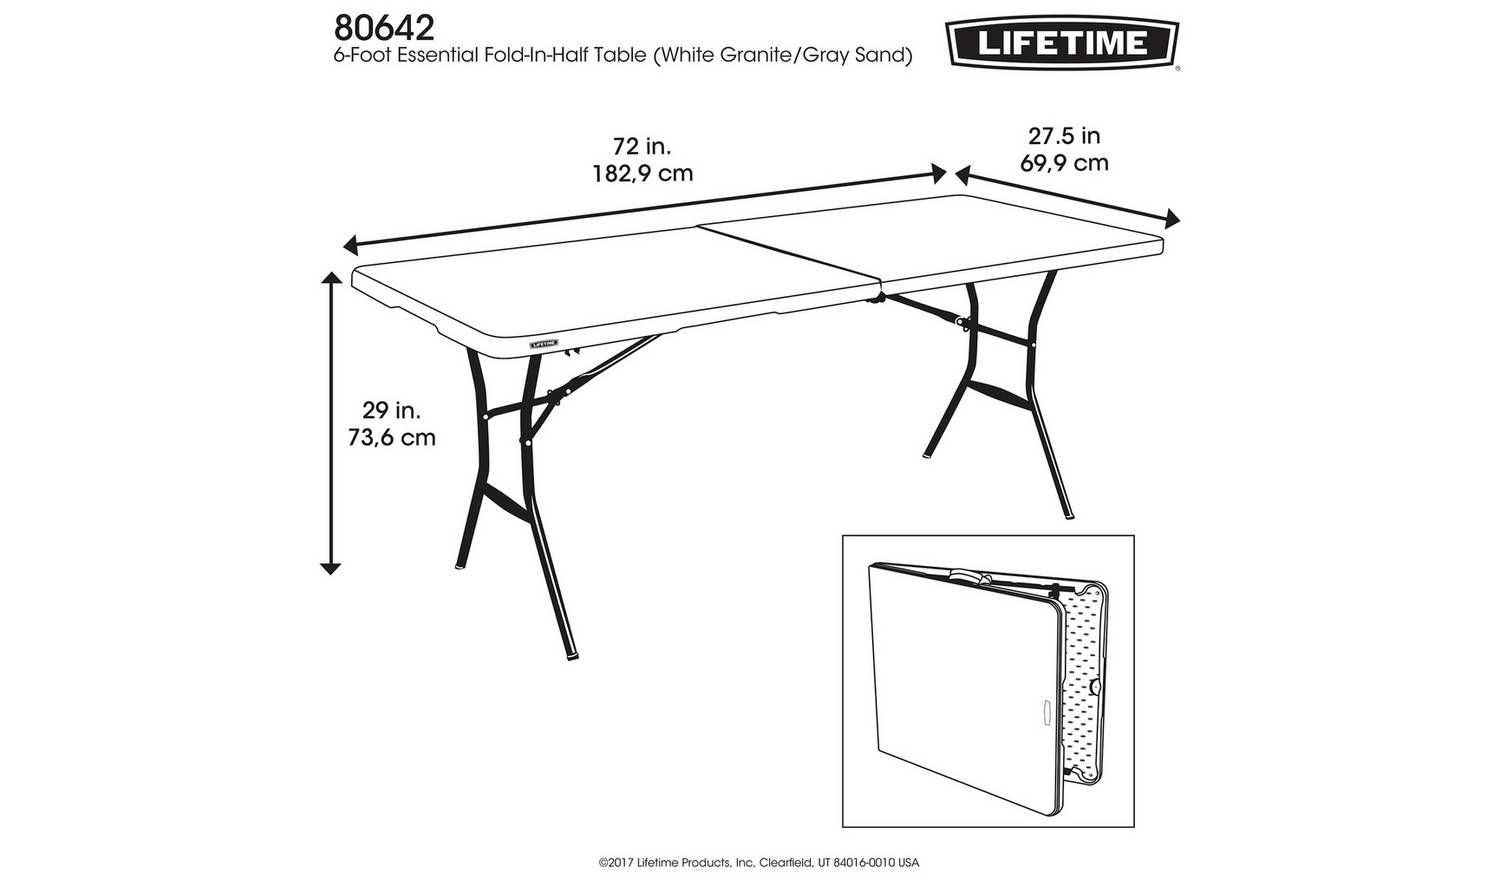 Buy Lifetime 6ft Folding Camping Table Camping Tables In 2020